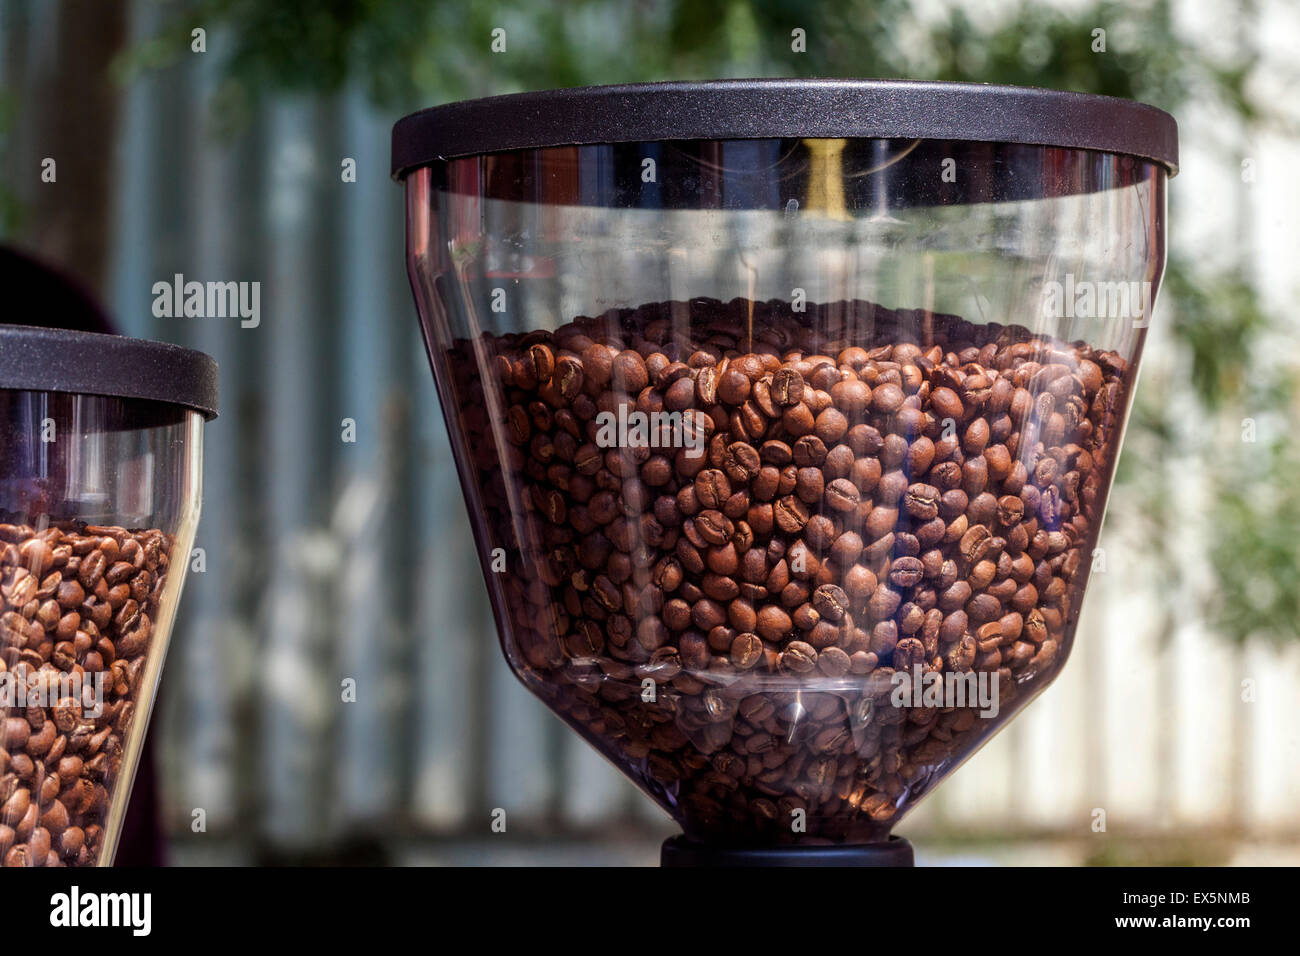 Coffee grinder,  roasted coffee beans, bean tank - Stock Image